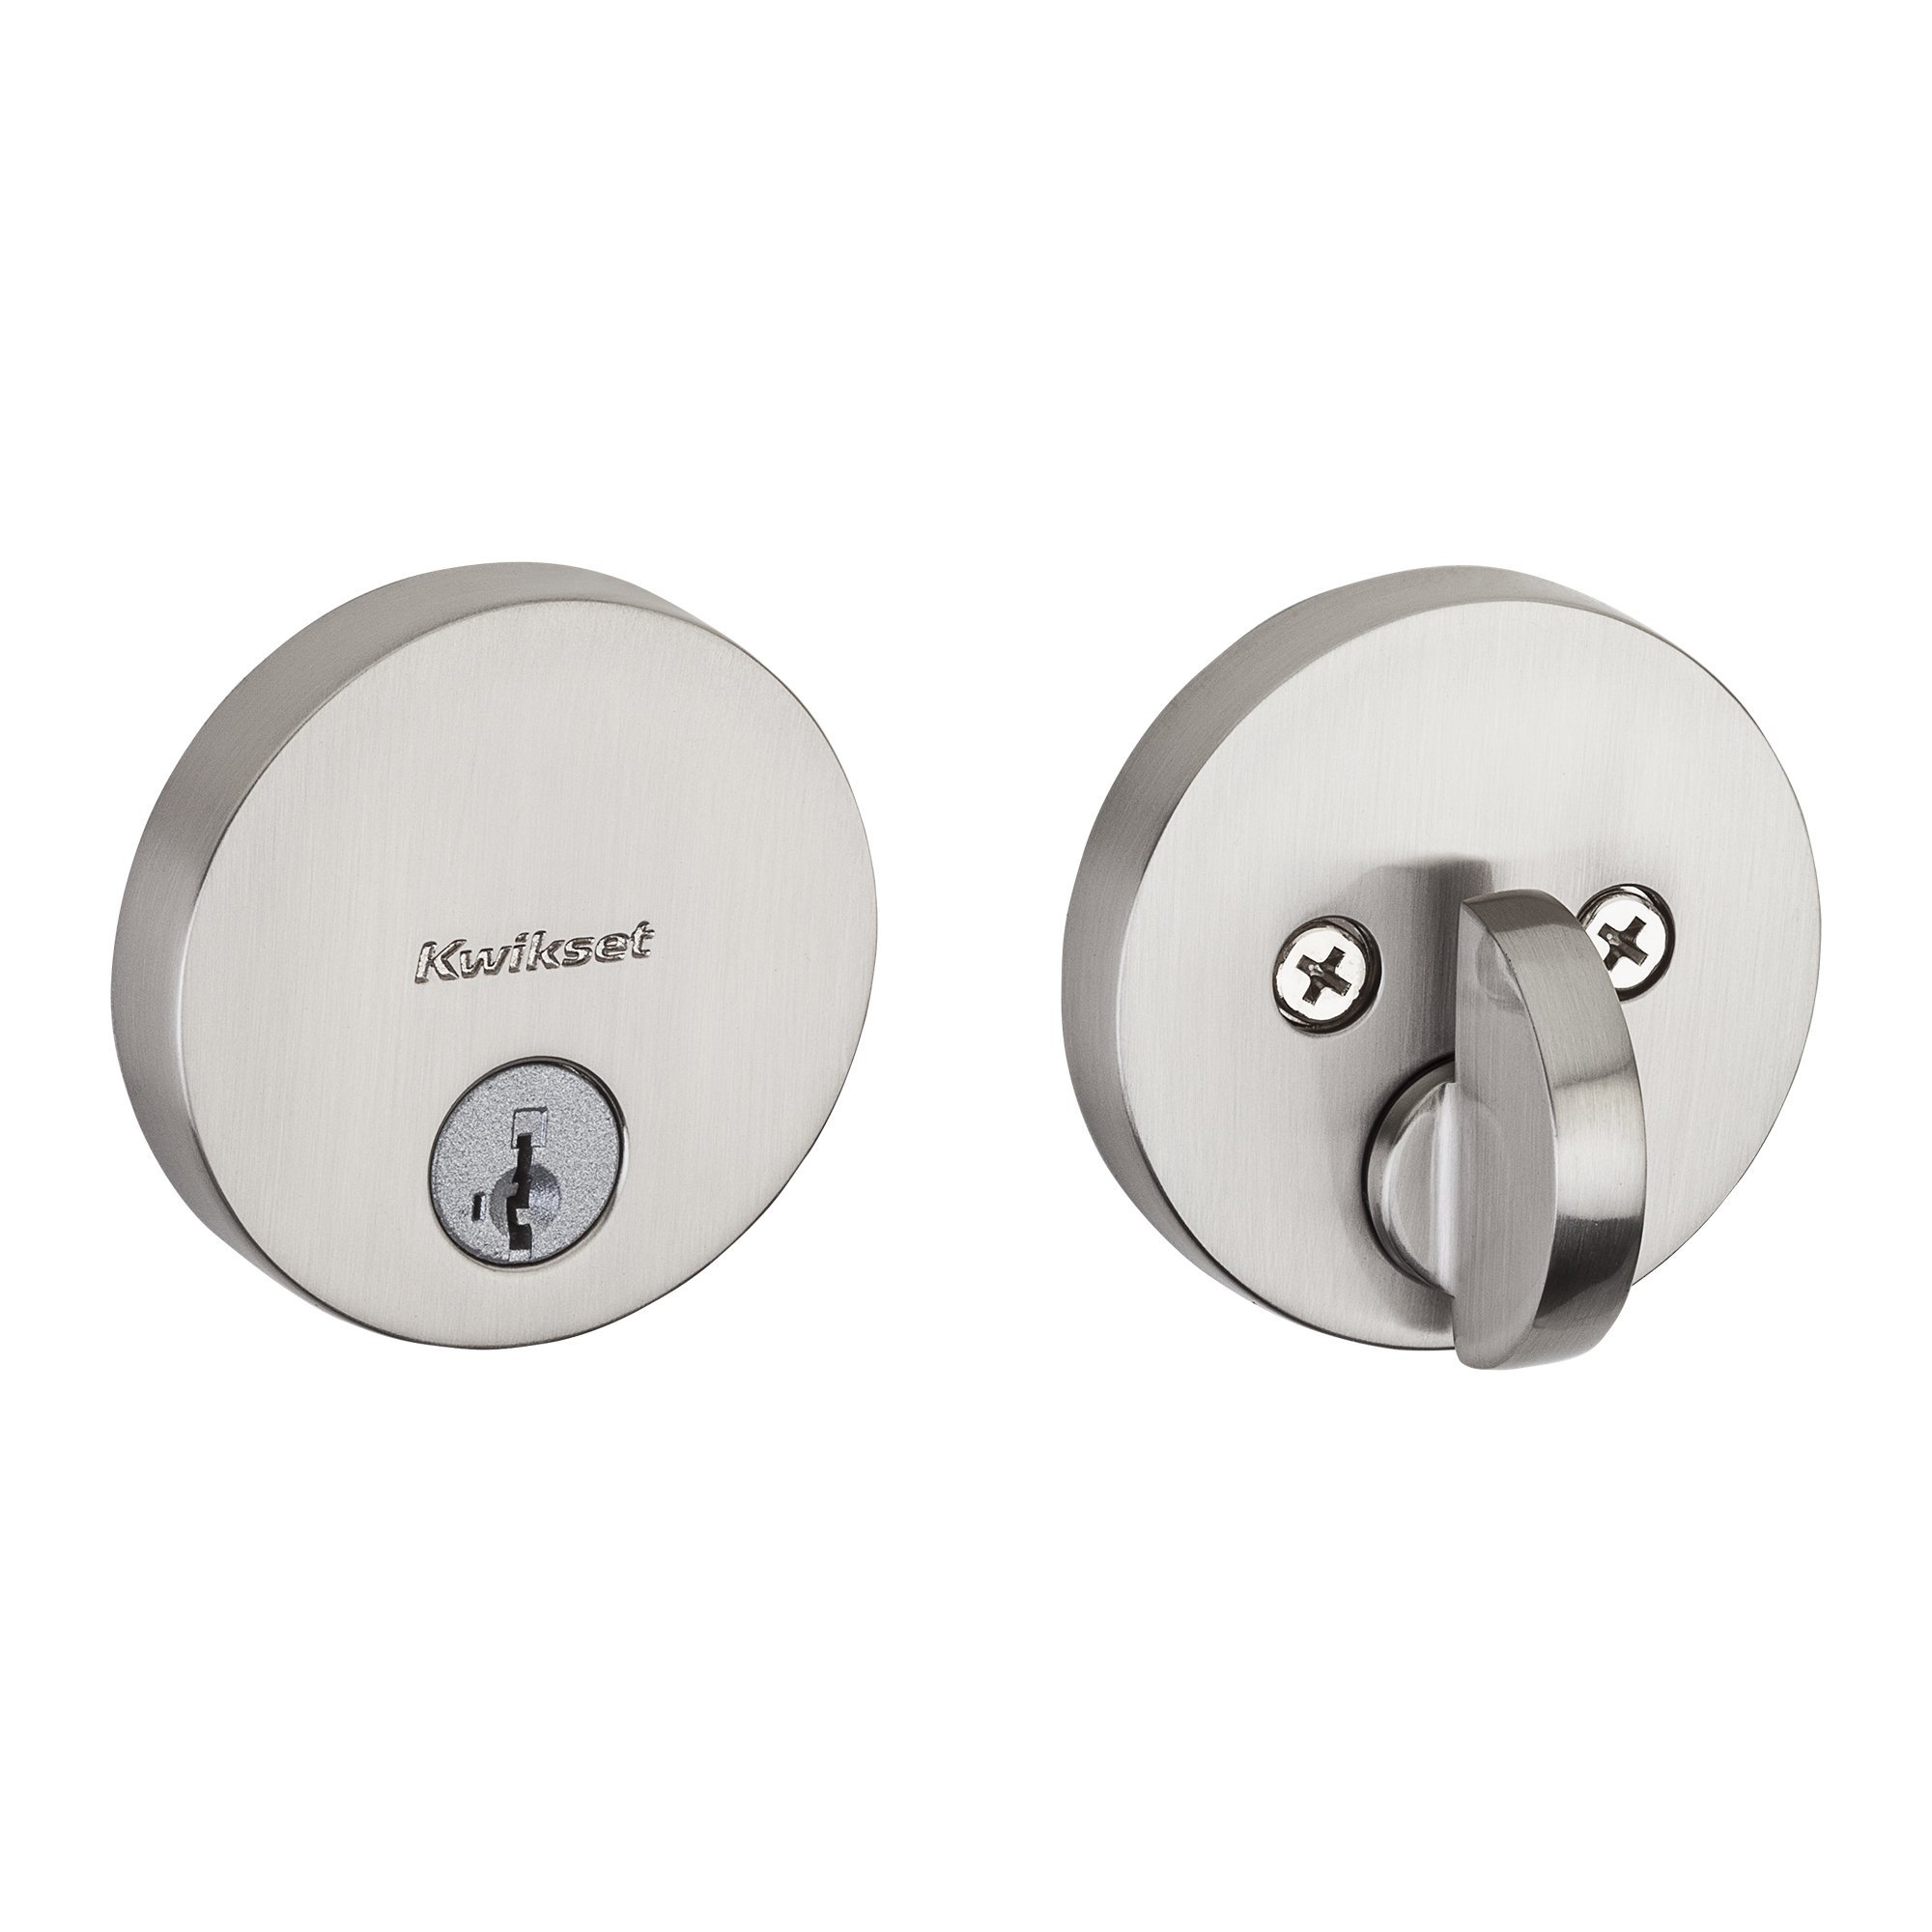 Kwikset 258 Uptown Low Profile Round Contemporary Deadbolt featuring SmartKey in Satin Nickel